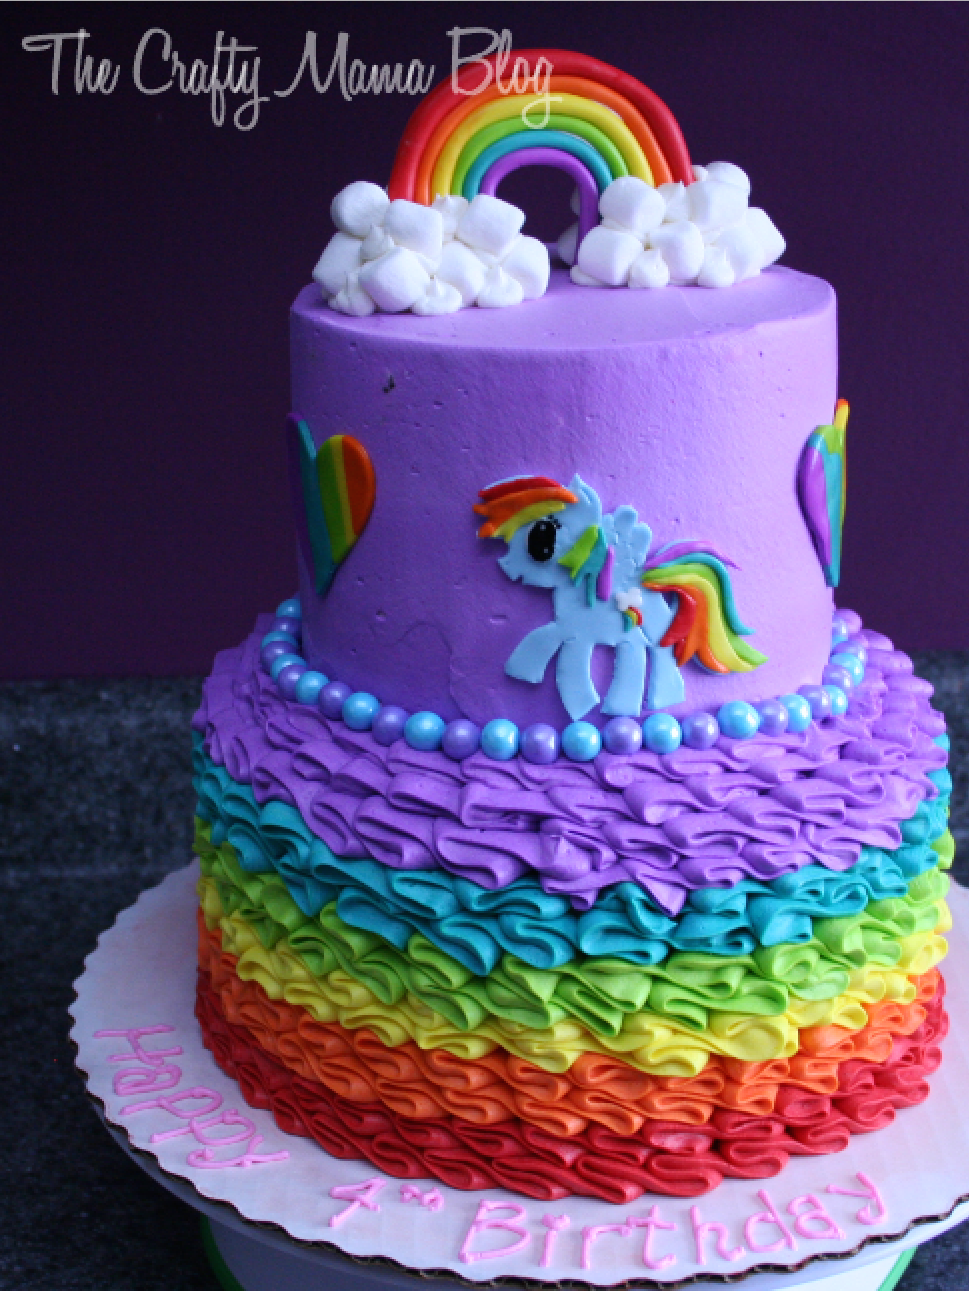 My Little Pony Twilight Sparkle Birthday Cake With Buttercream Icing